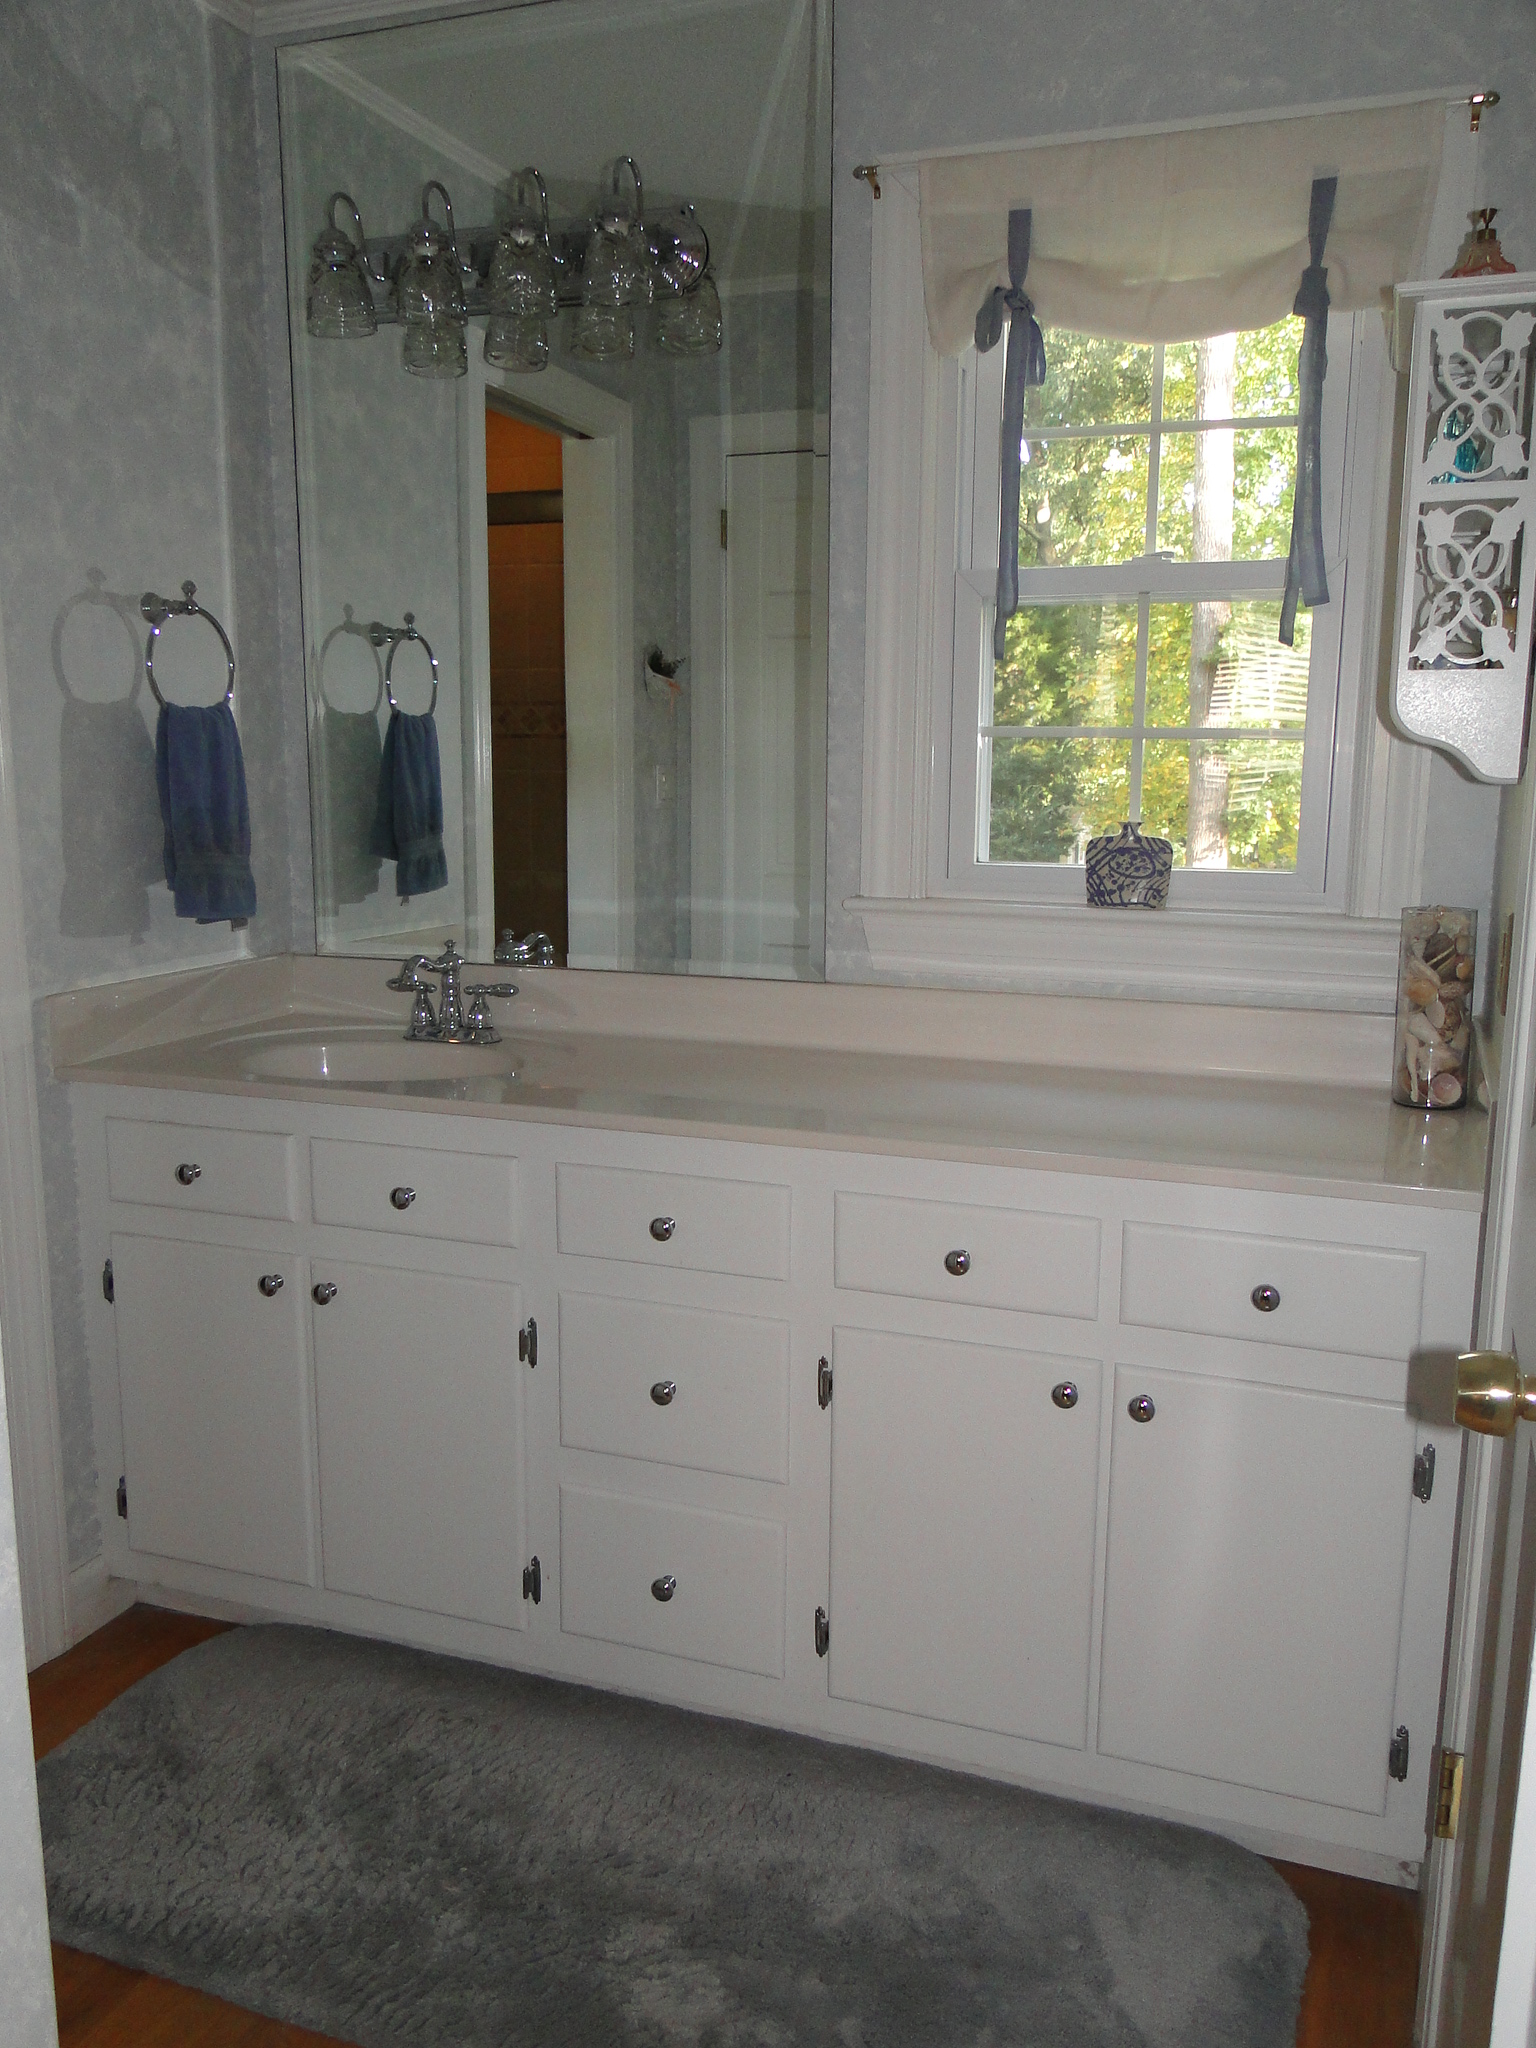 Bathroom Vanity Virginia Beach kings grant home with a pool - byrd realty group